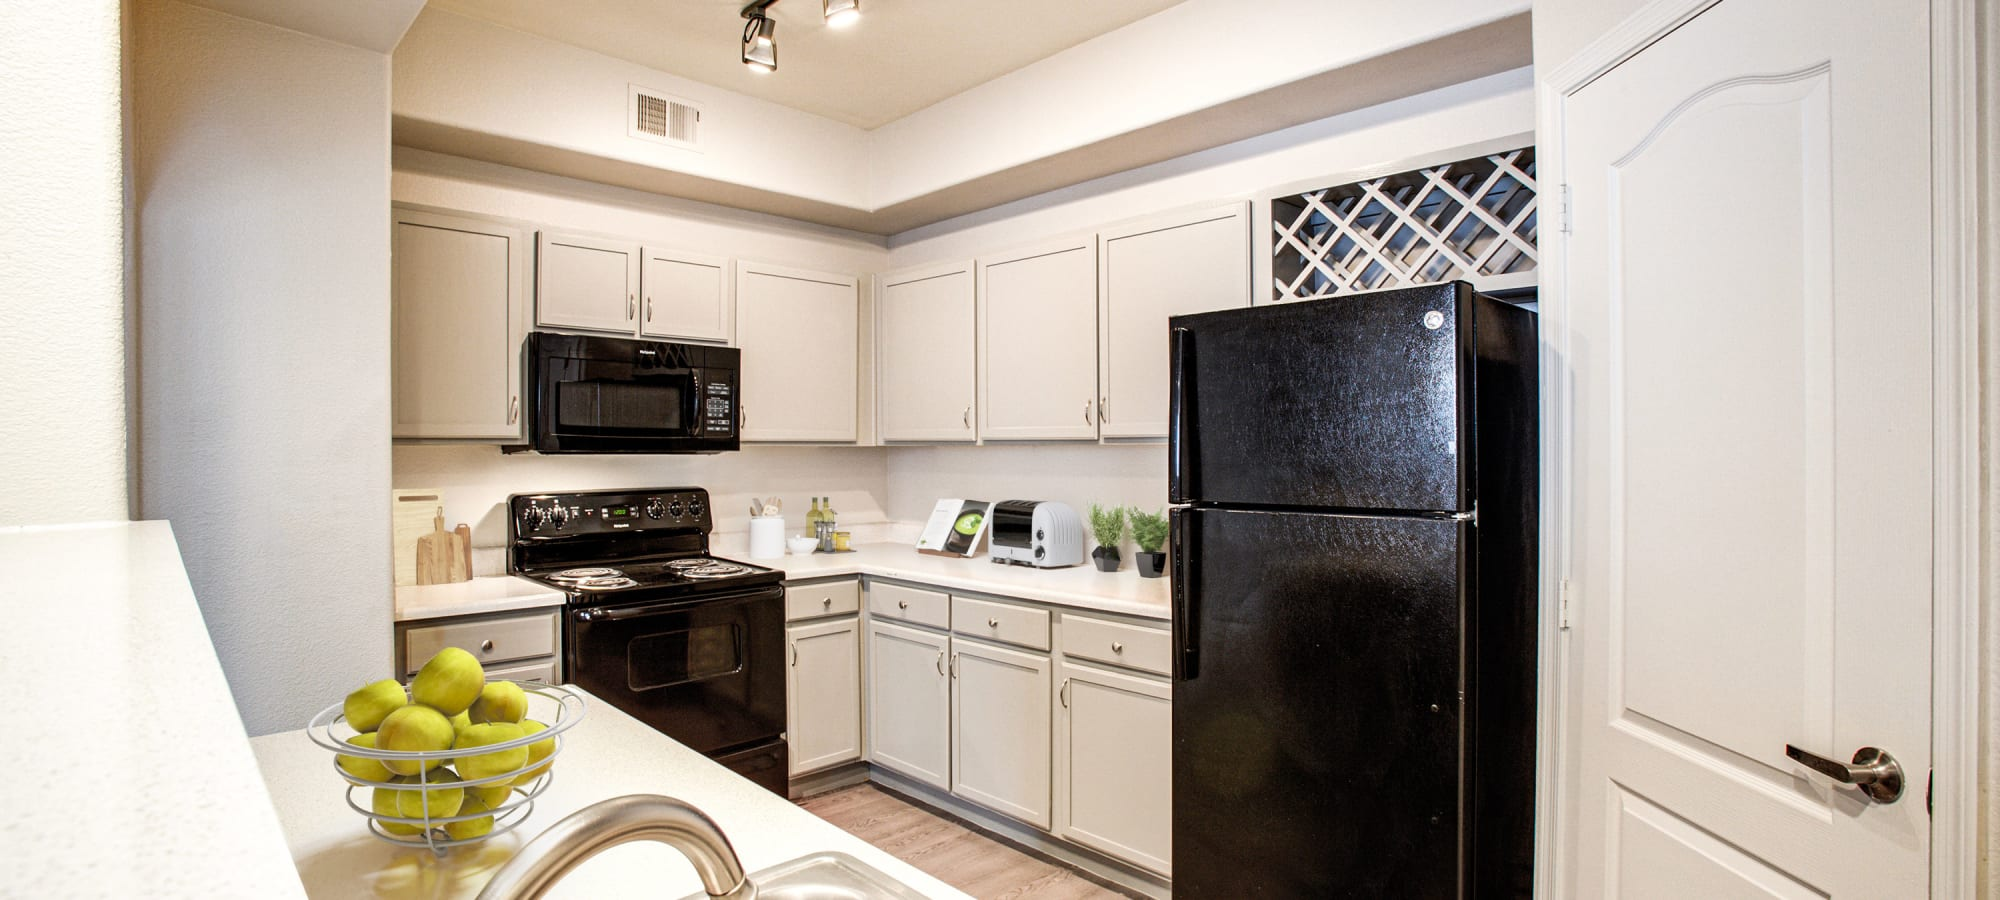 Kitchen with green accents at The Sterling in Gilbert, Arizona